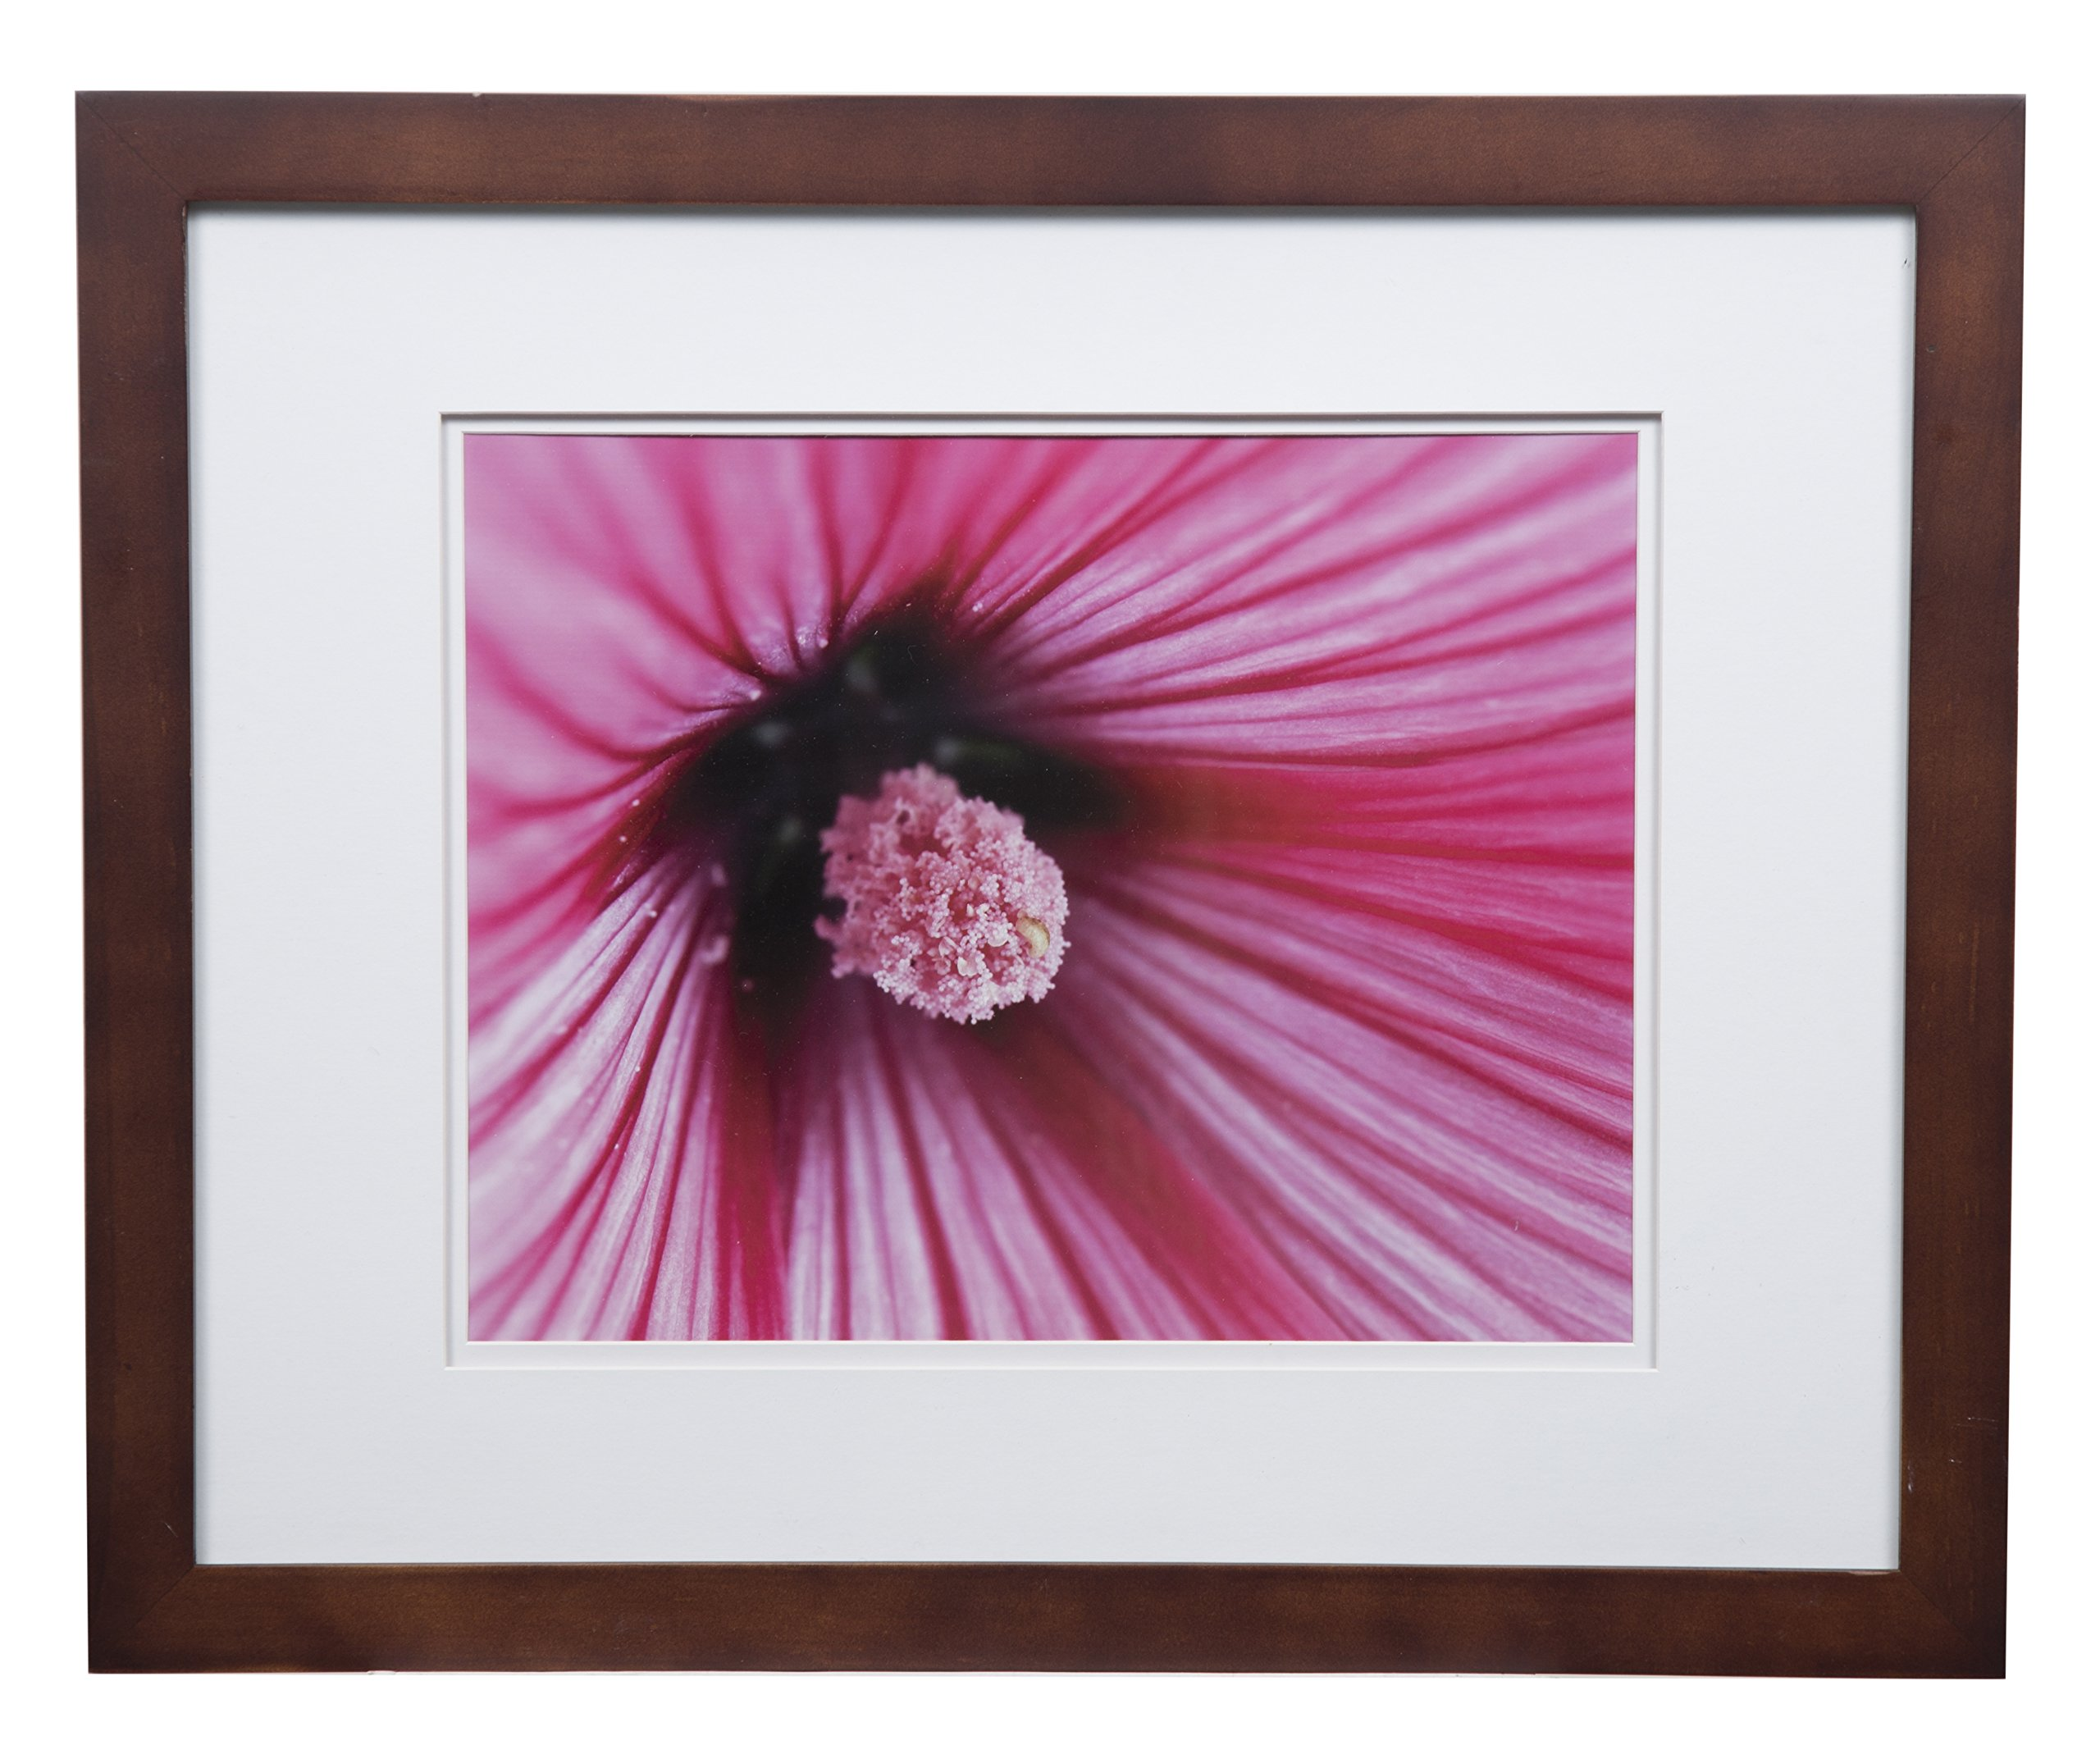 Gallery Solutions Flat Wall Picture White Photo 16X20 Walnut Double Frame, MATTED to 11X14, 16'' x 20'',